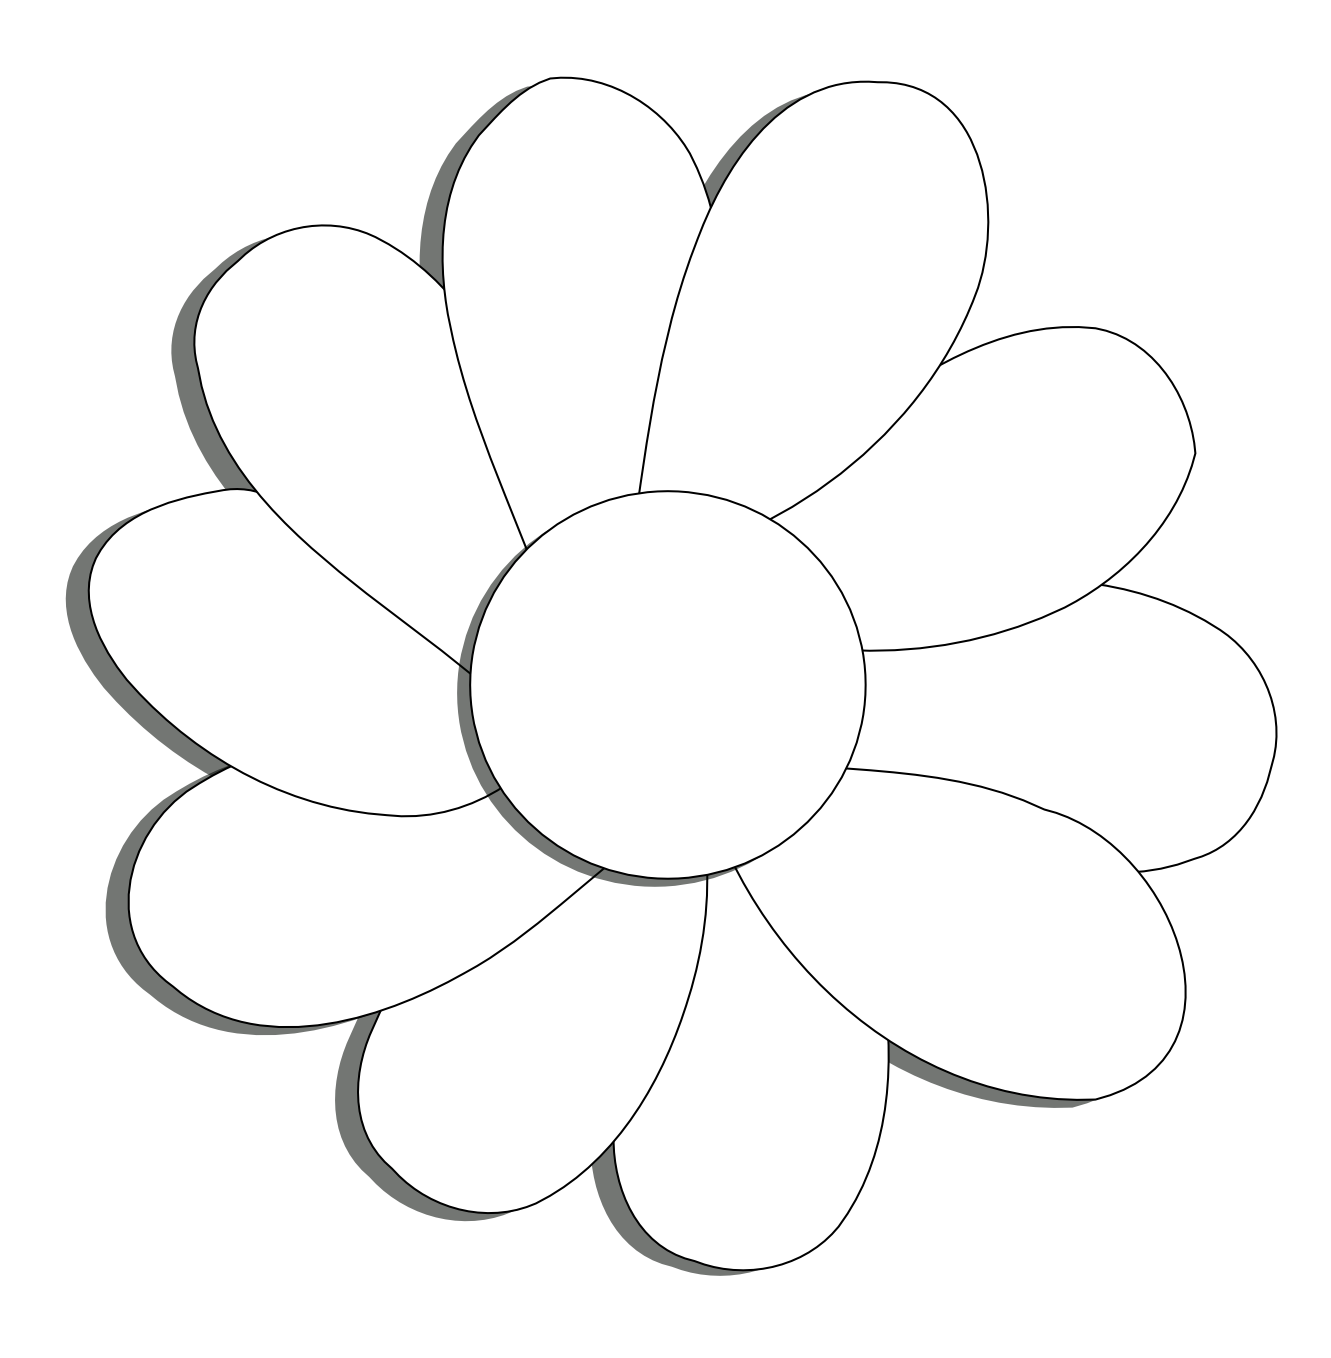 Daisies clipart flowerblack. Free daisy flower outline